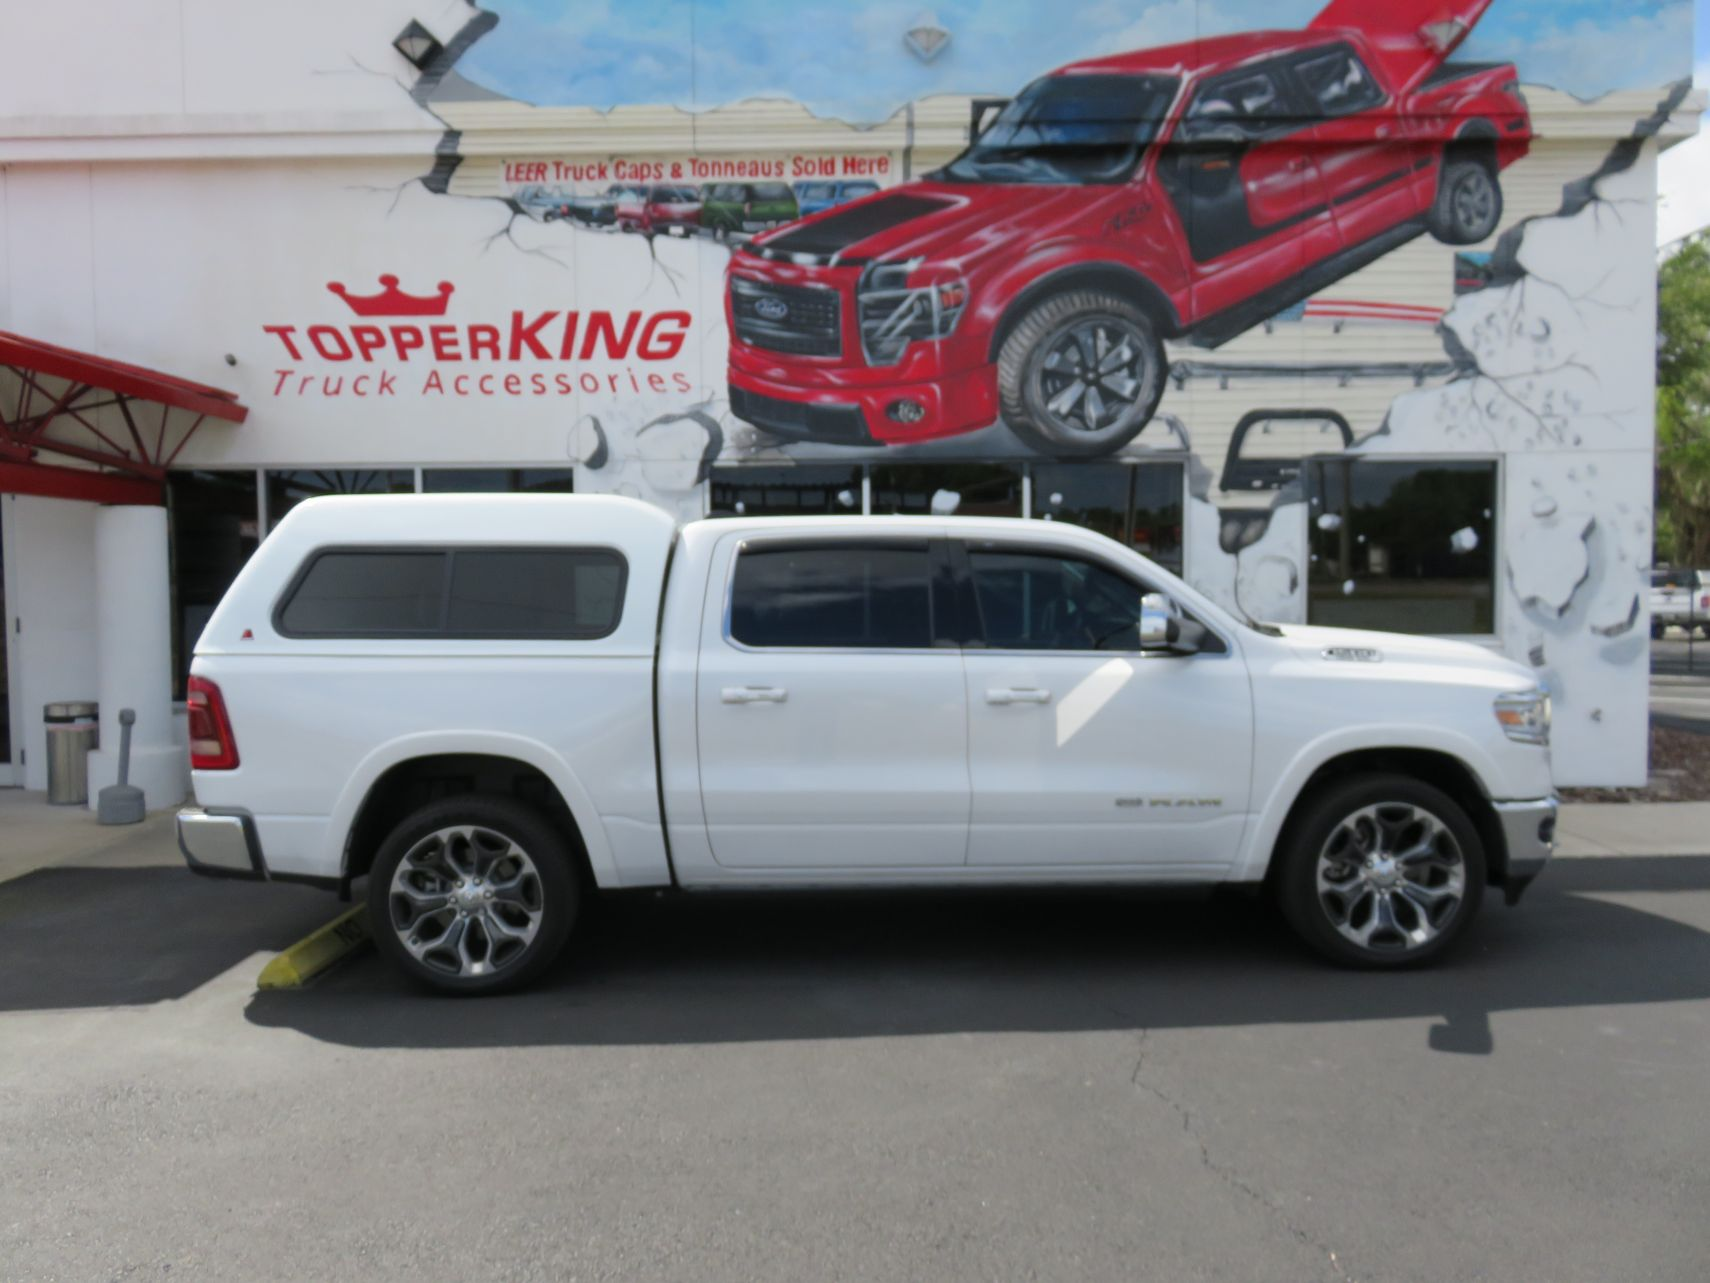 2019 White Dodge Ram 1500 LEER 180, Hitch, Tint, Vent Visors, Chrome by TopperKING in Brandon, FL 813-689-2449 or Clearwater, FL 727-530-9066. Call today!